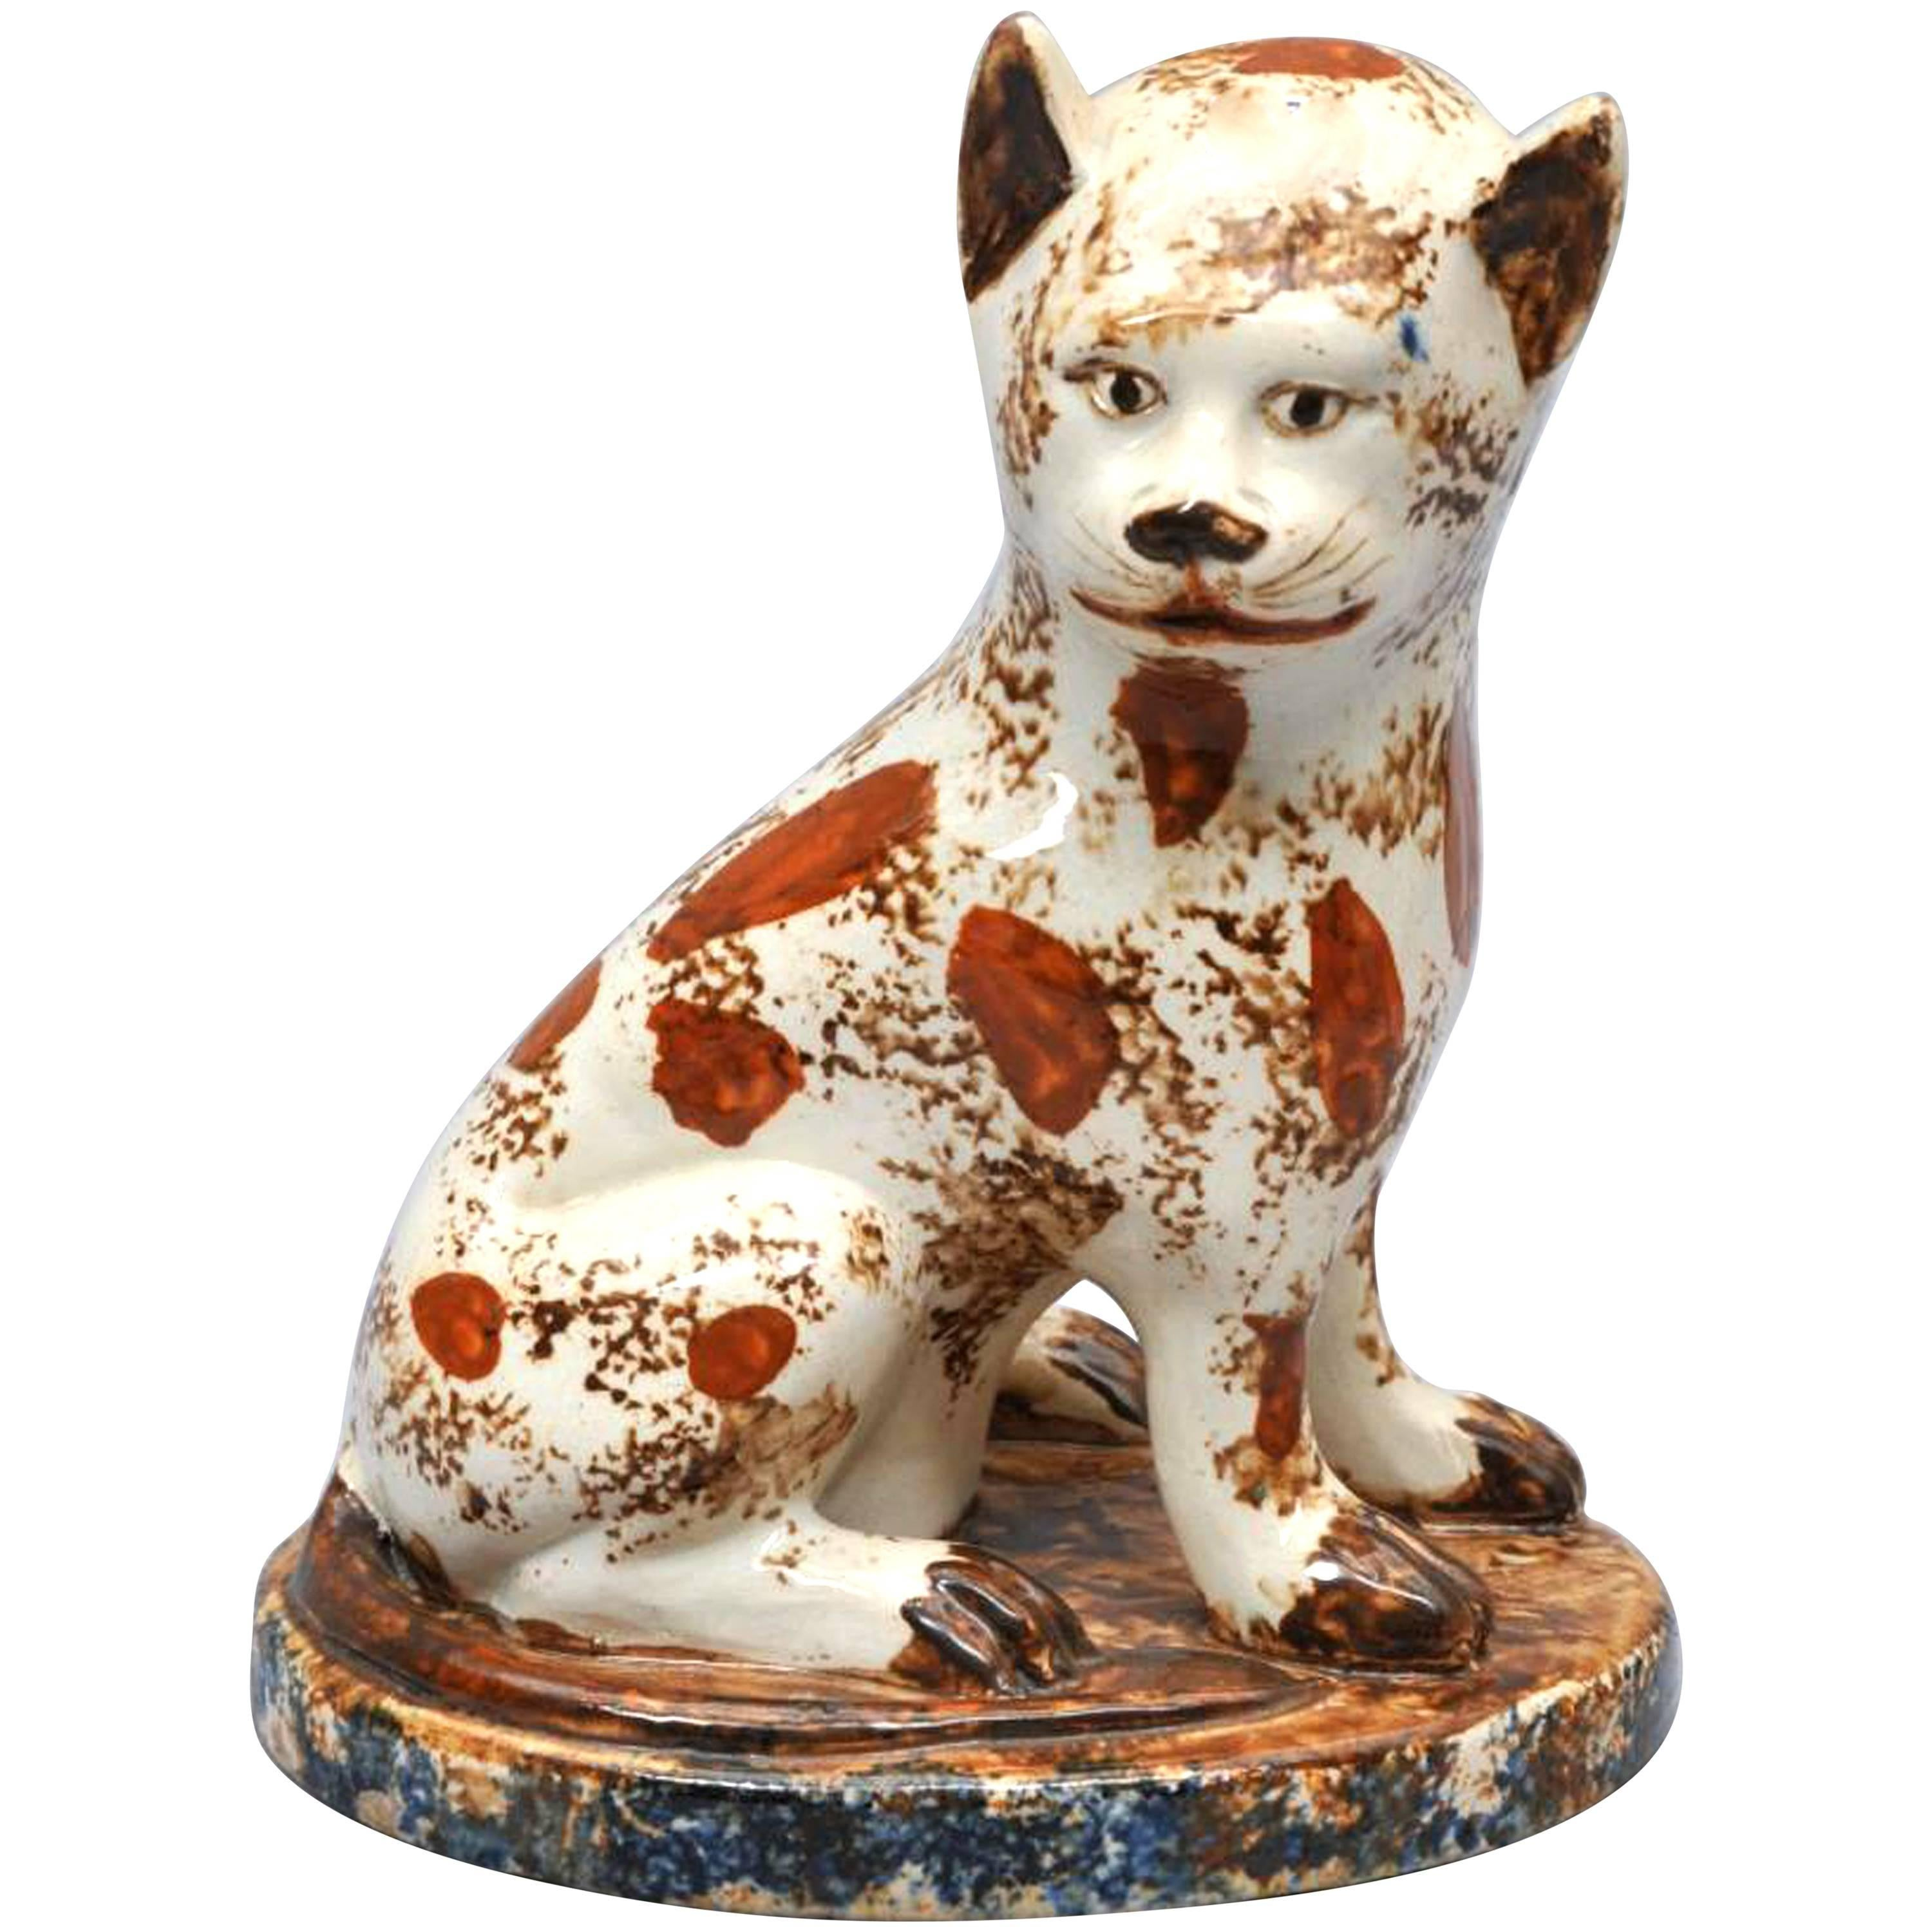 Early Staffordshire Pottery Whimsical Cat, Early 19th Century